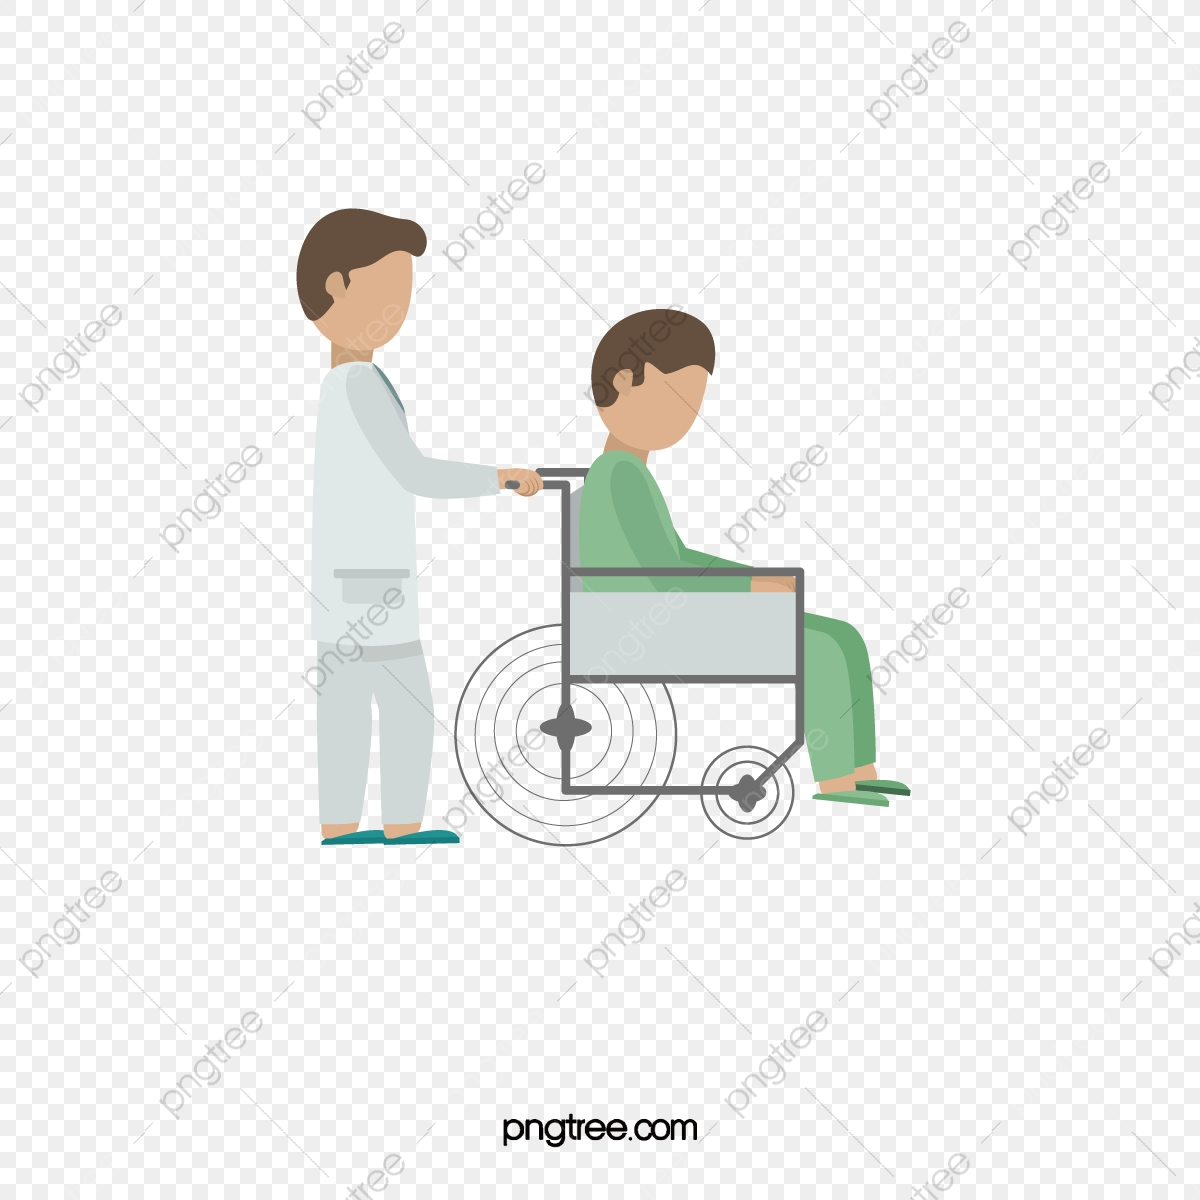 patient vector png free doctor patient patients doctor and patient vector images pngtree https pngtree com freepng a wheelchair patient 3207146 html